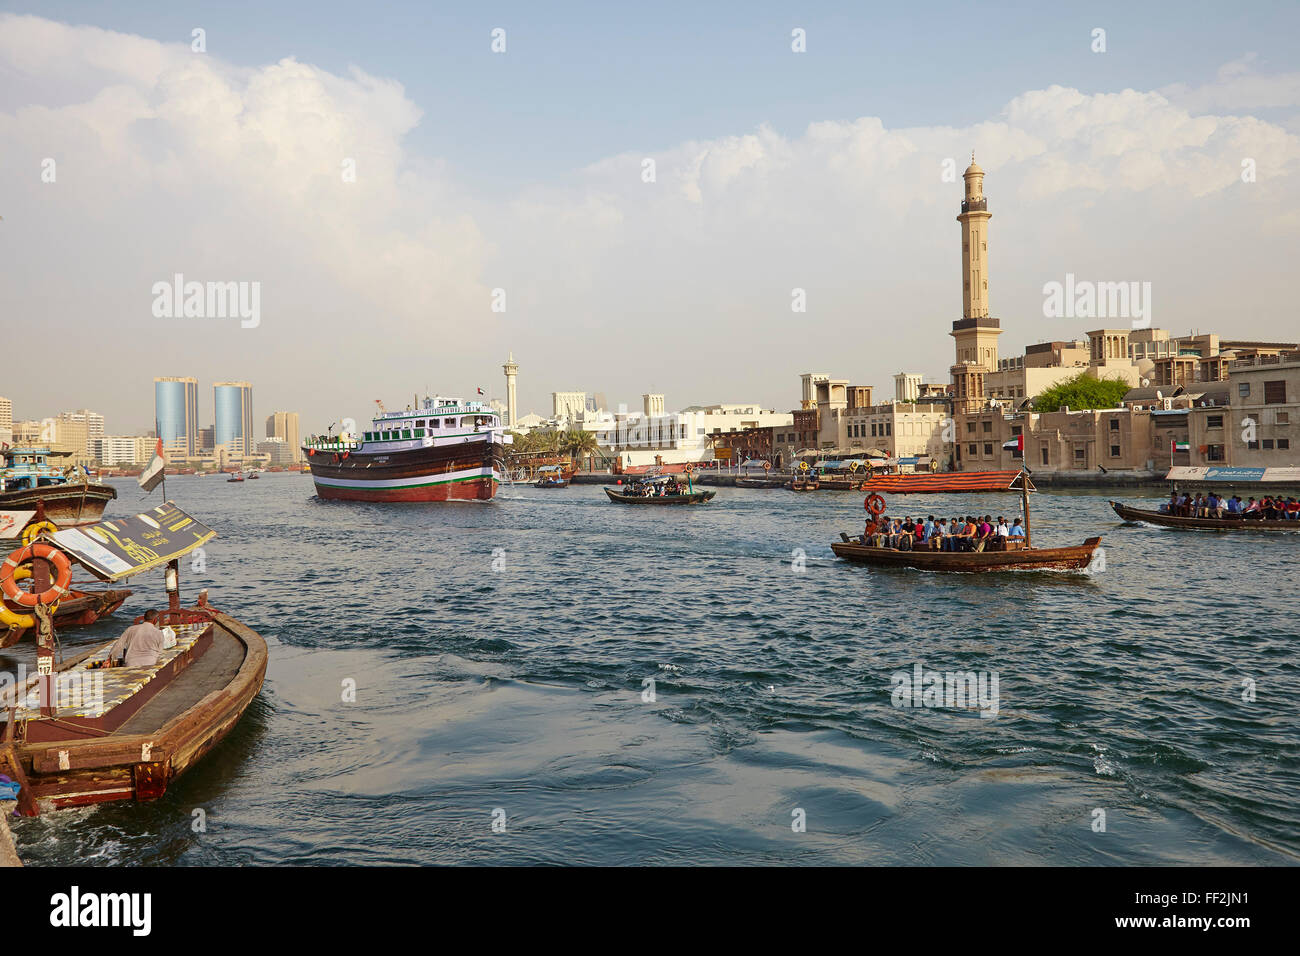 Dubai Creek, Dubai, United Arab Emirates, MiddRMe East - Stock Image